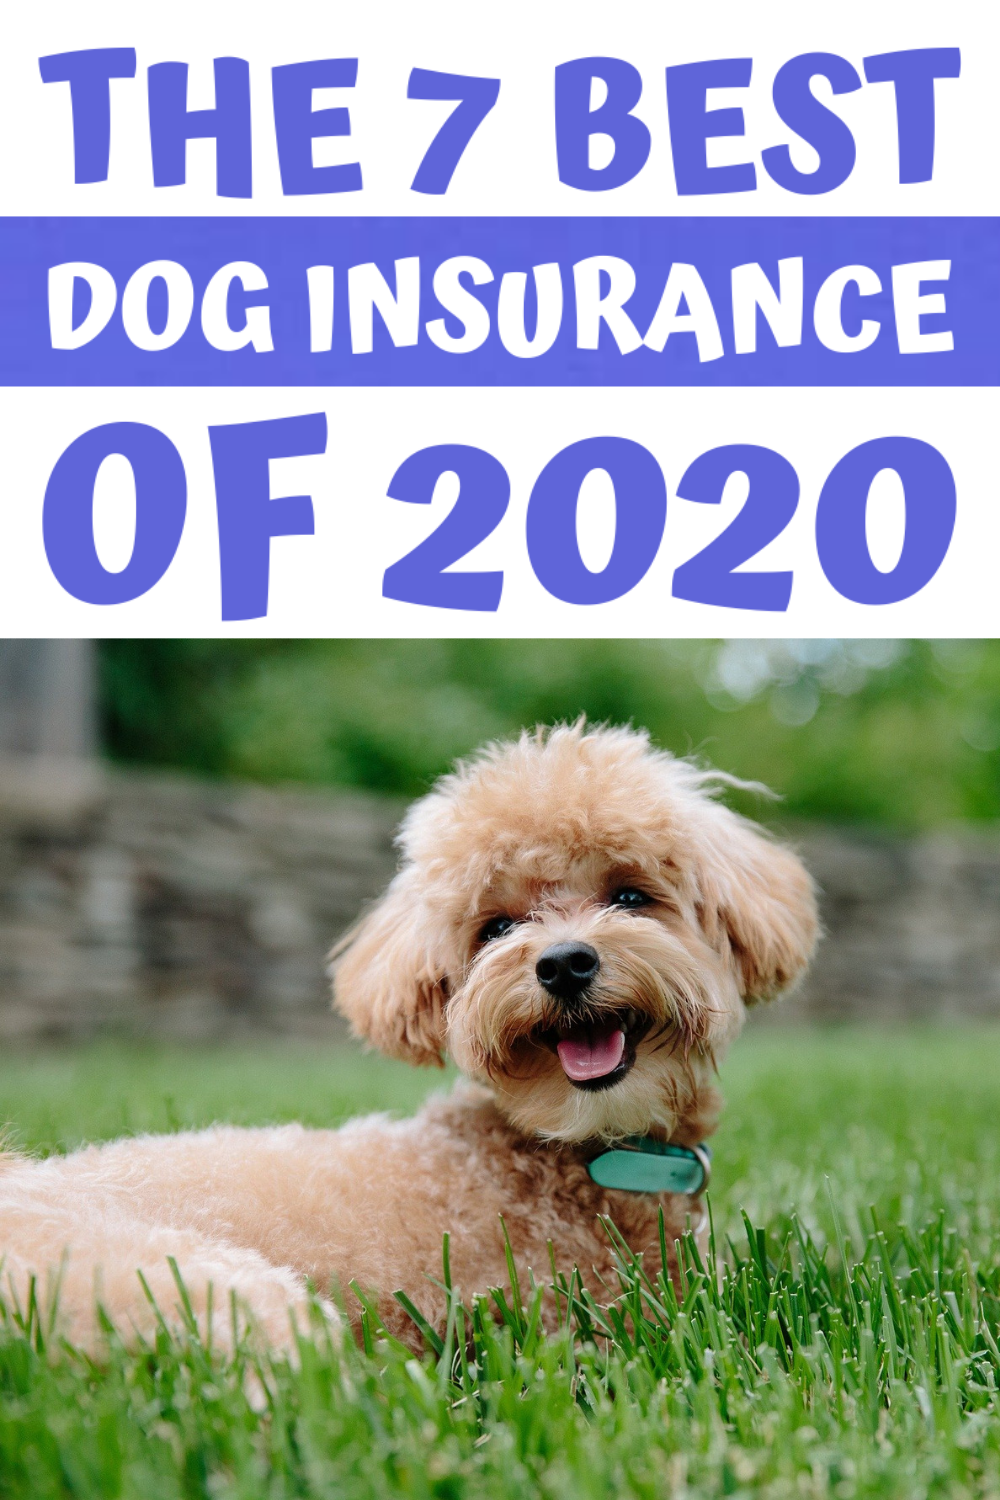 How to Find the Best Dog Insurance in 2020 Dog insurance